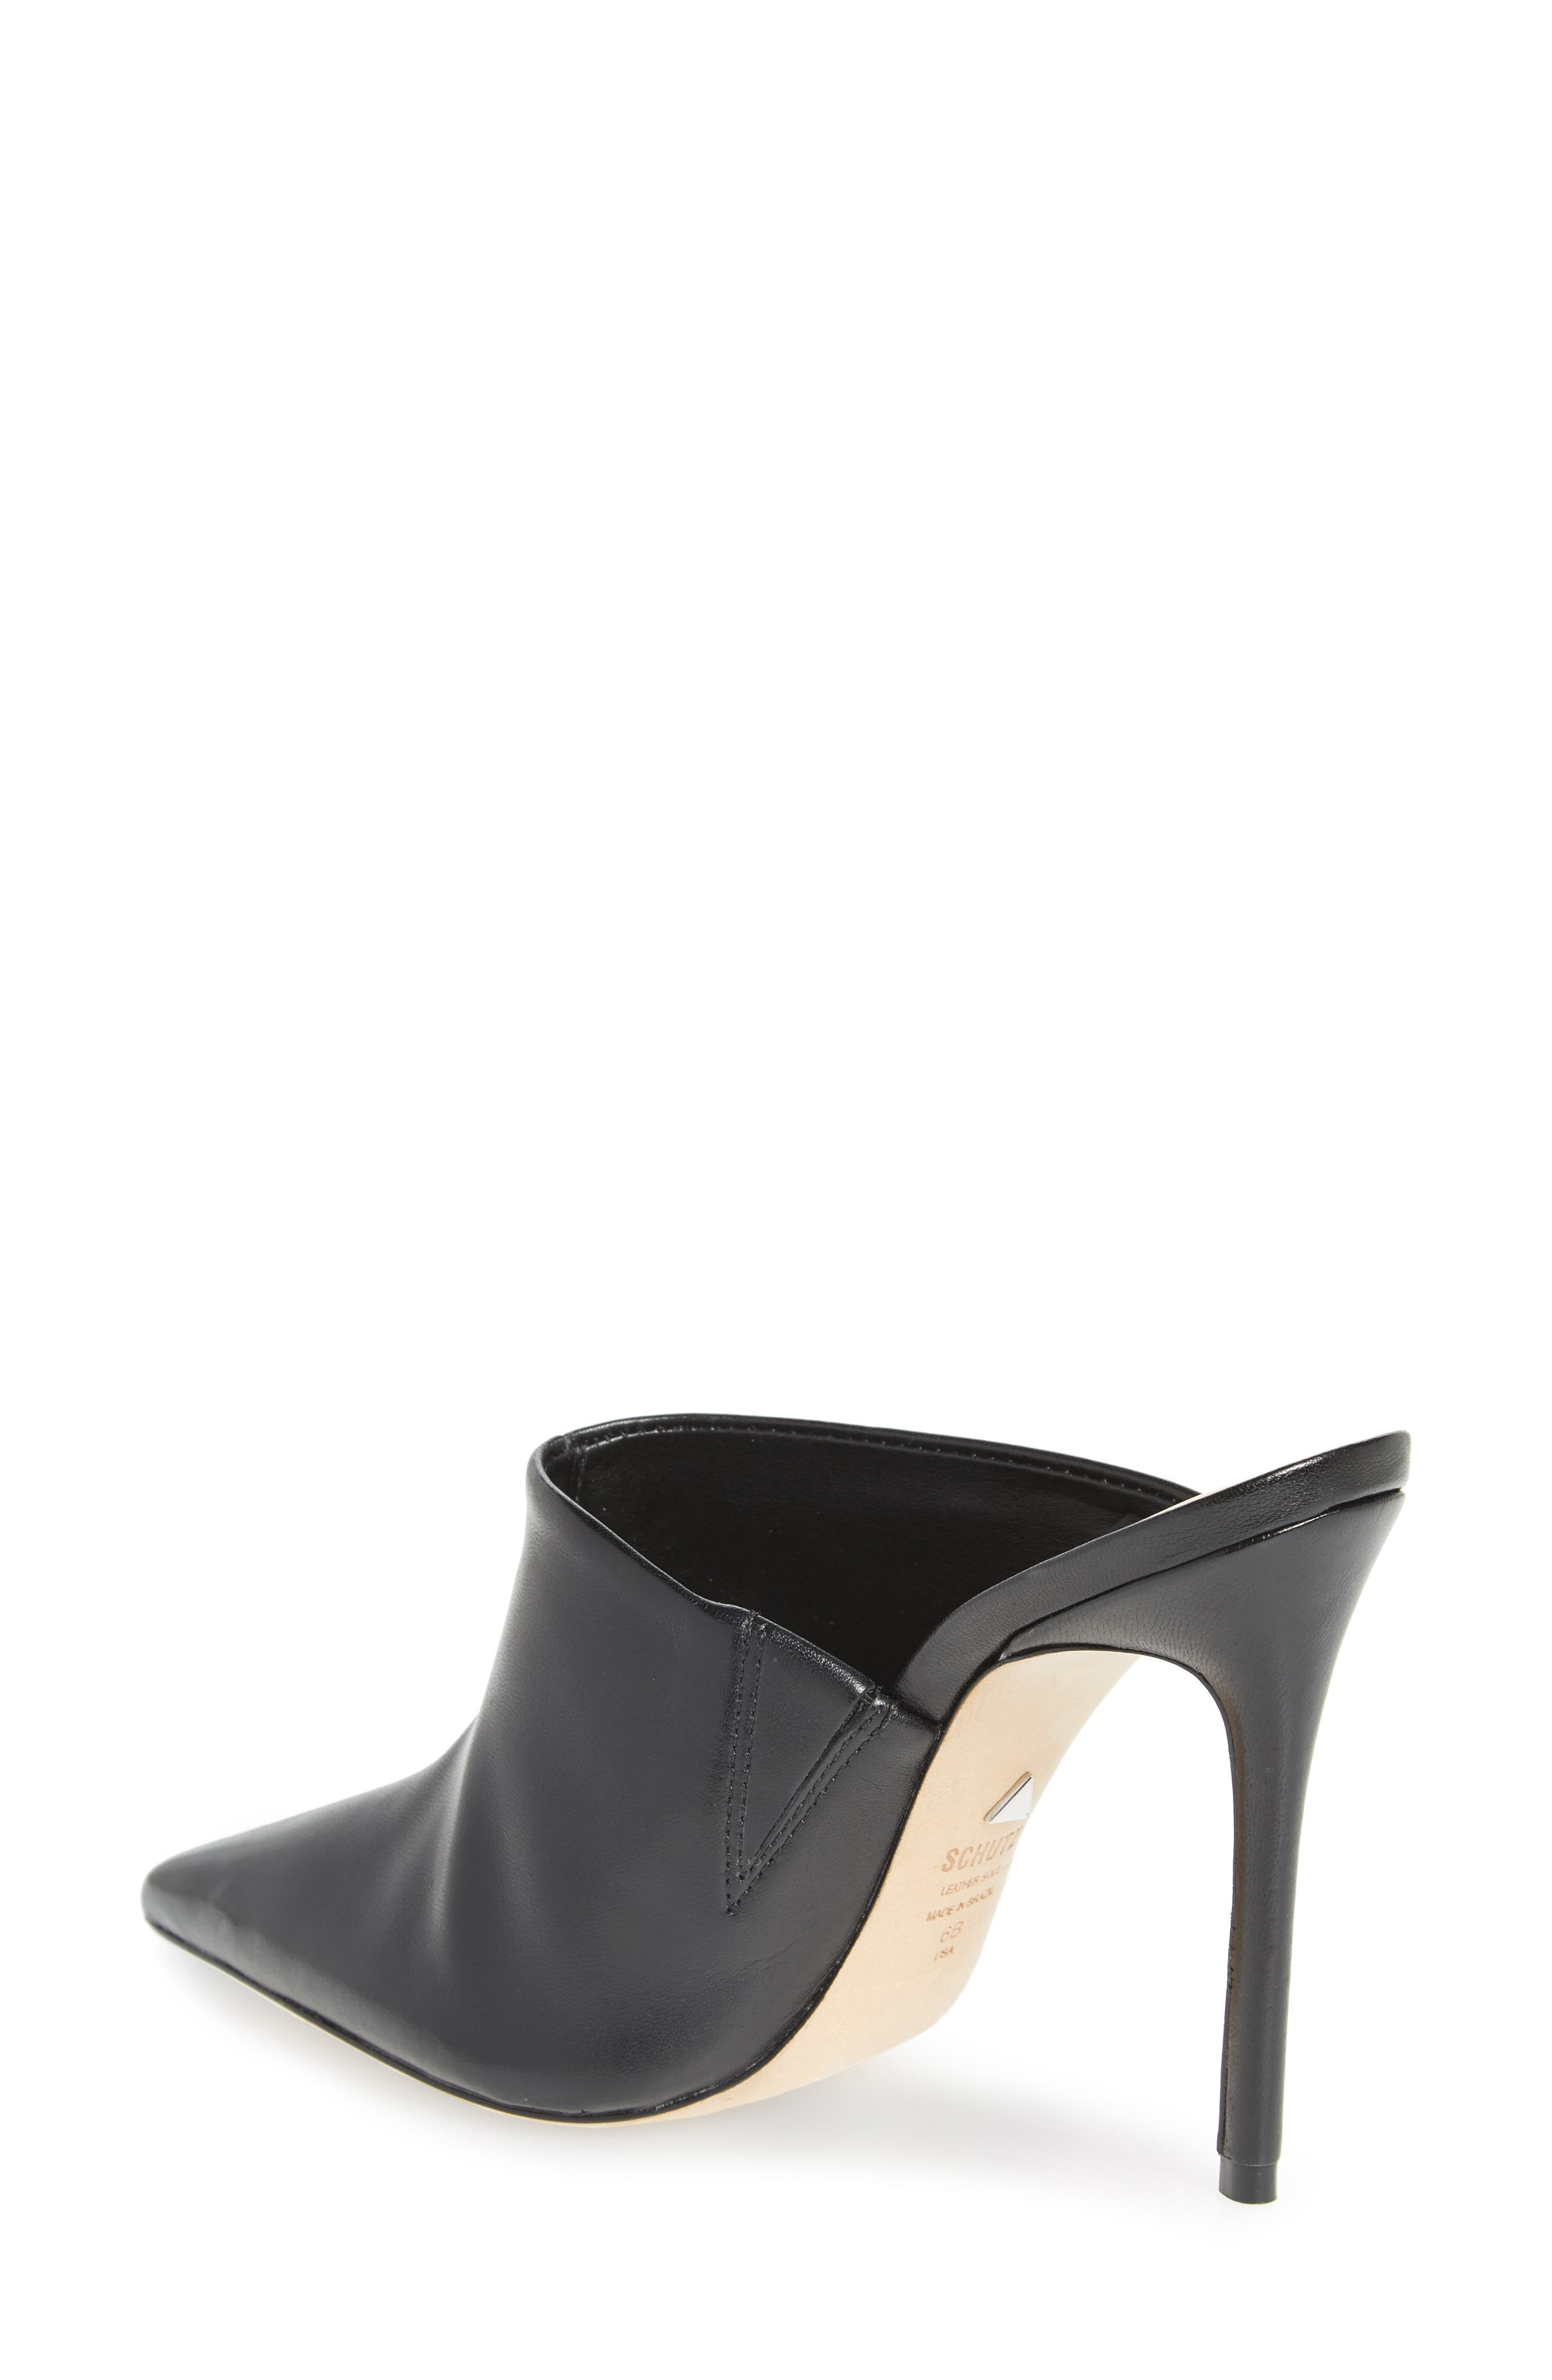 Quincy Stiletto Mule,                             Alternate thumbnail 2, color,                             BLACK